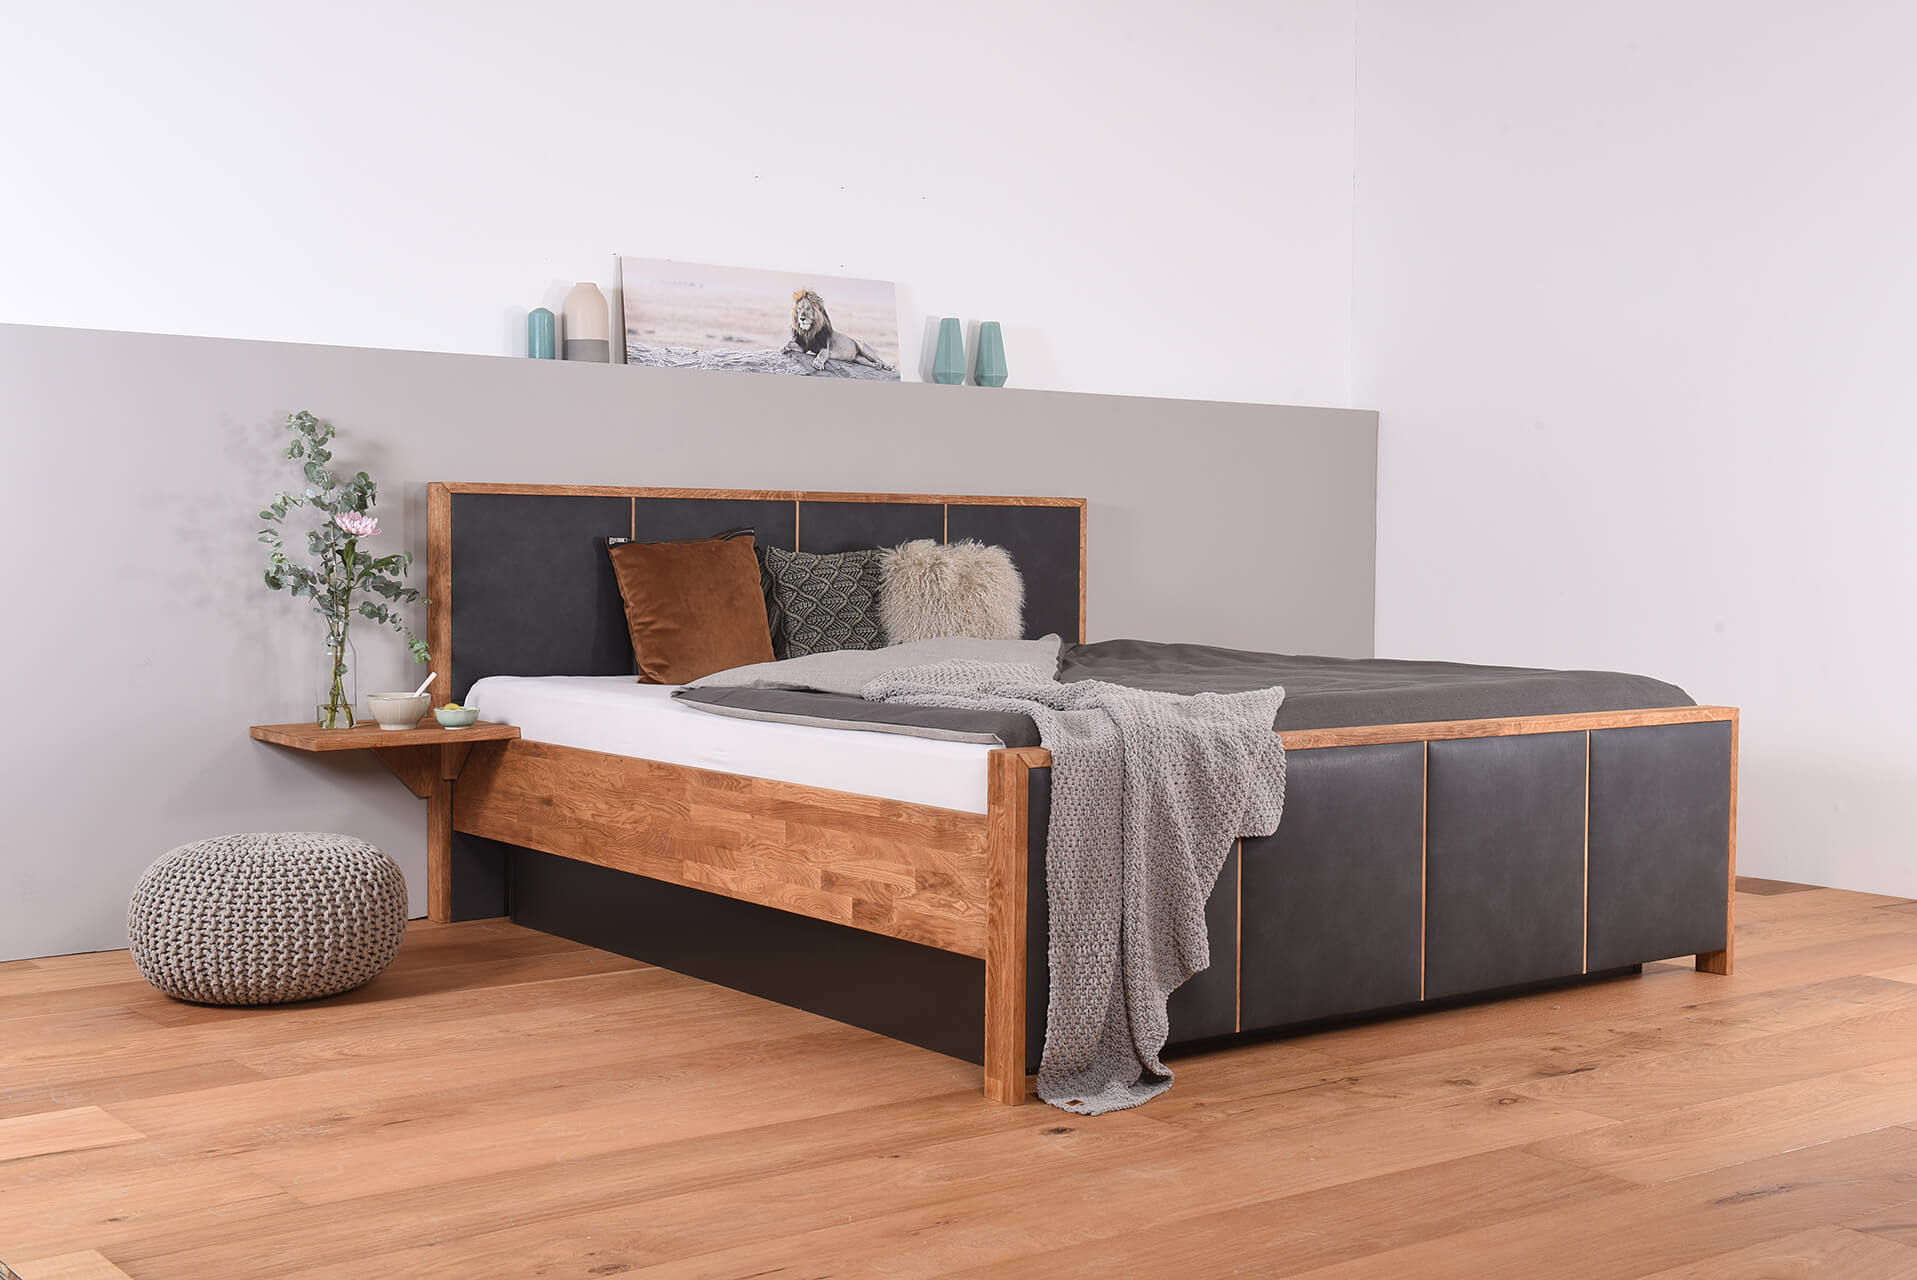 wasserbett mit geschlossenem sockel bettrahmen suma quaddro nachttischablage laken suma. Black Bedroom Furniture Sets. Home Design Ideas